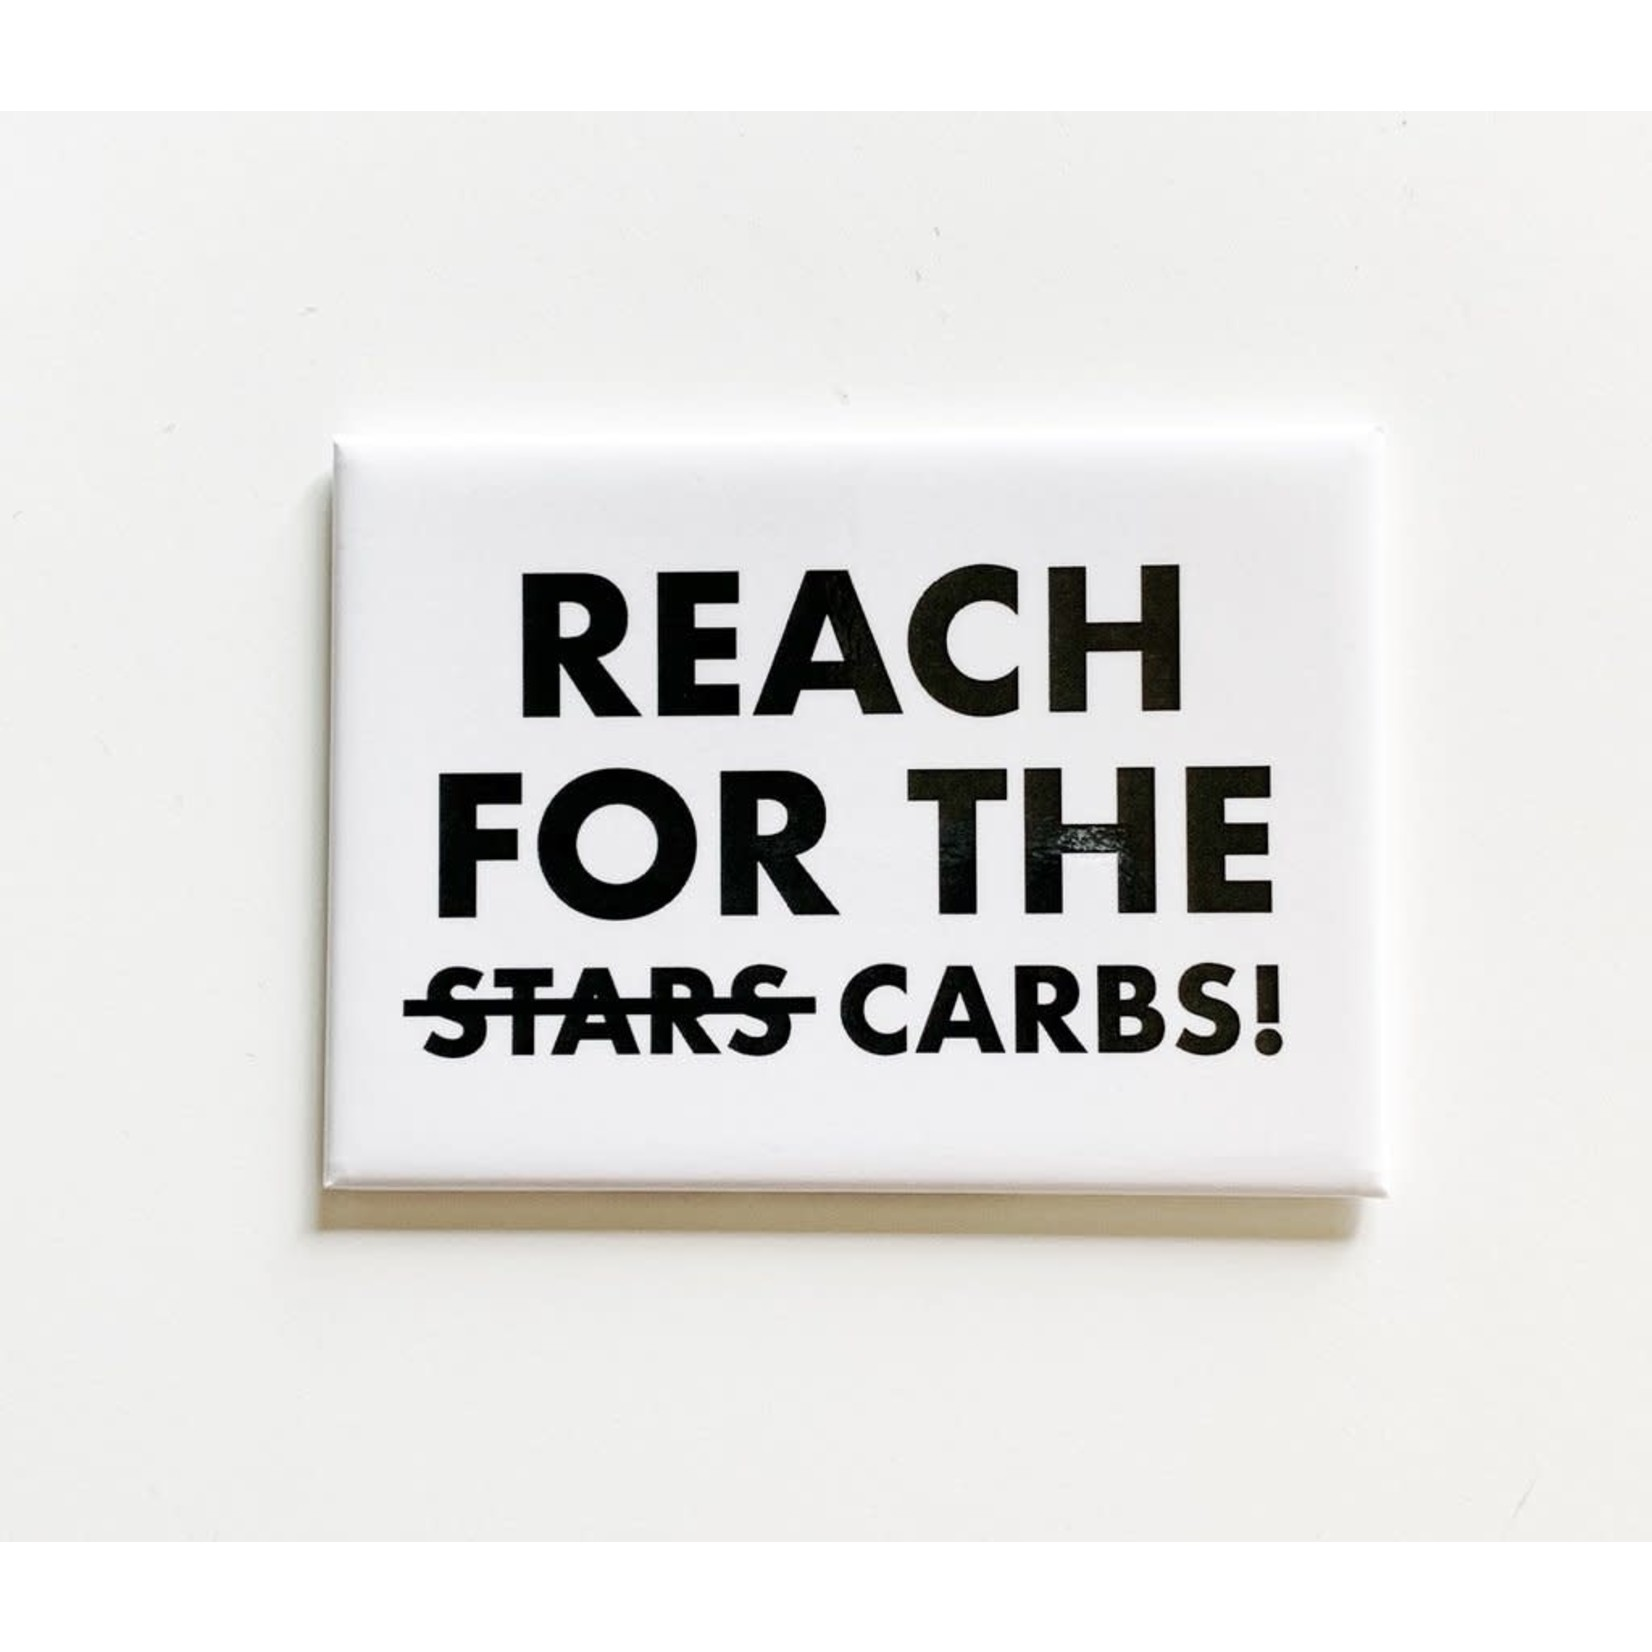 Pretty Alright Goods Magnet - Reach For The Carbs